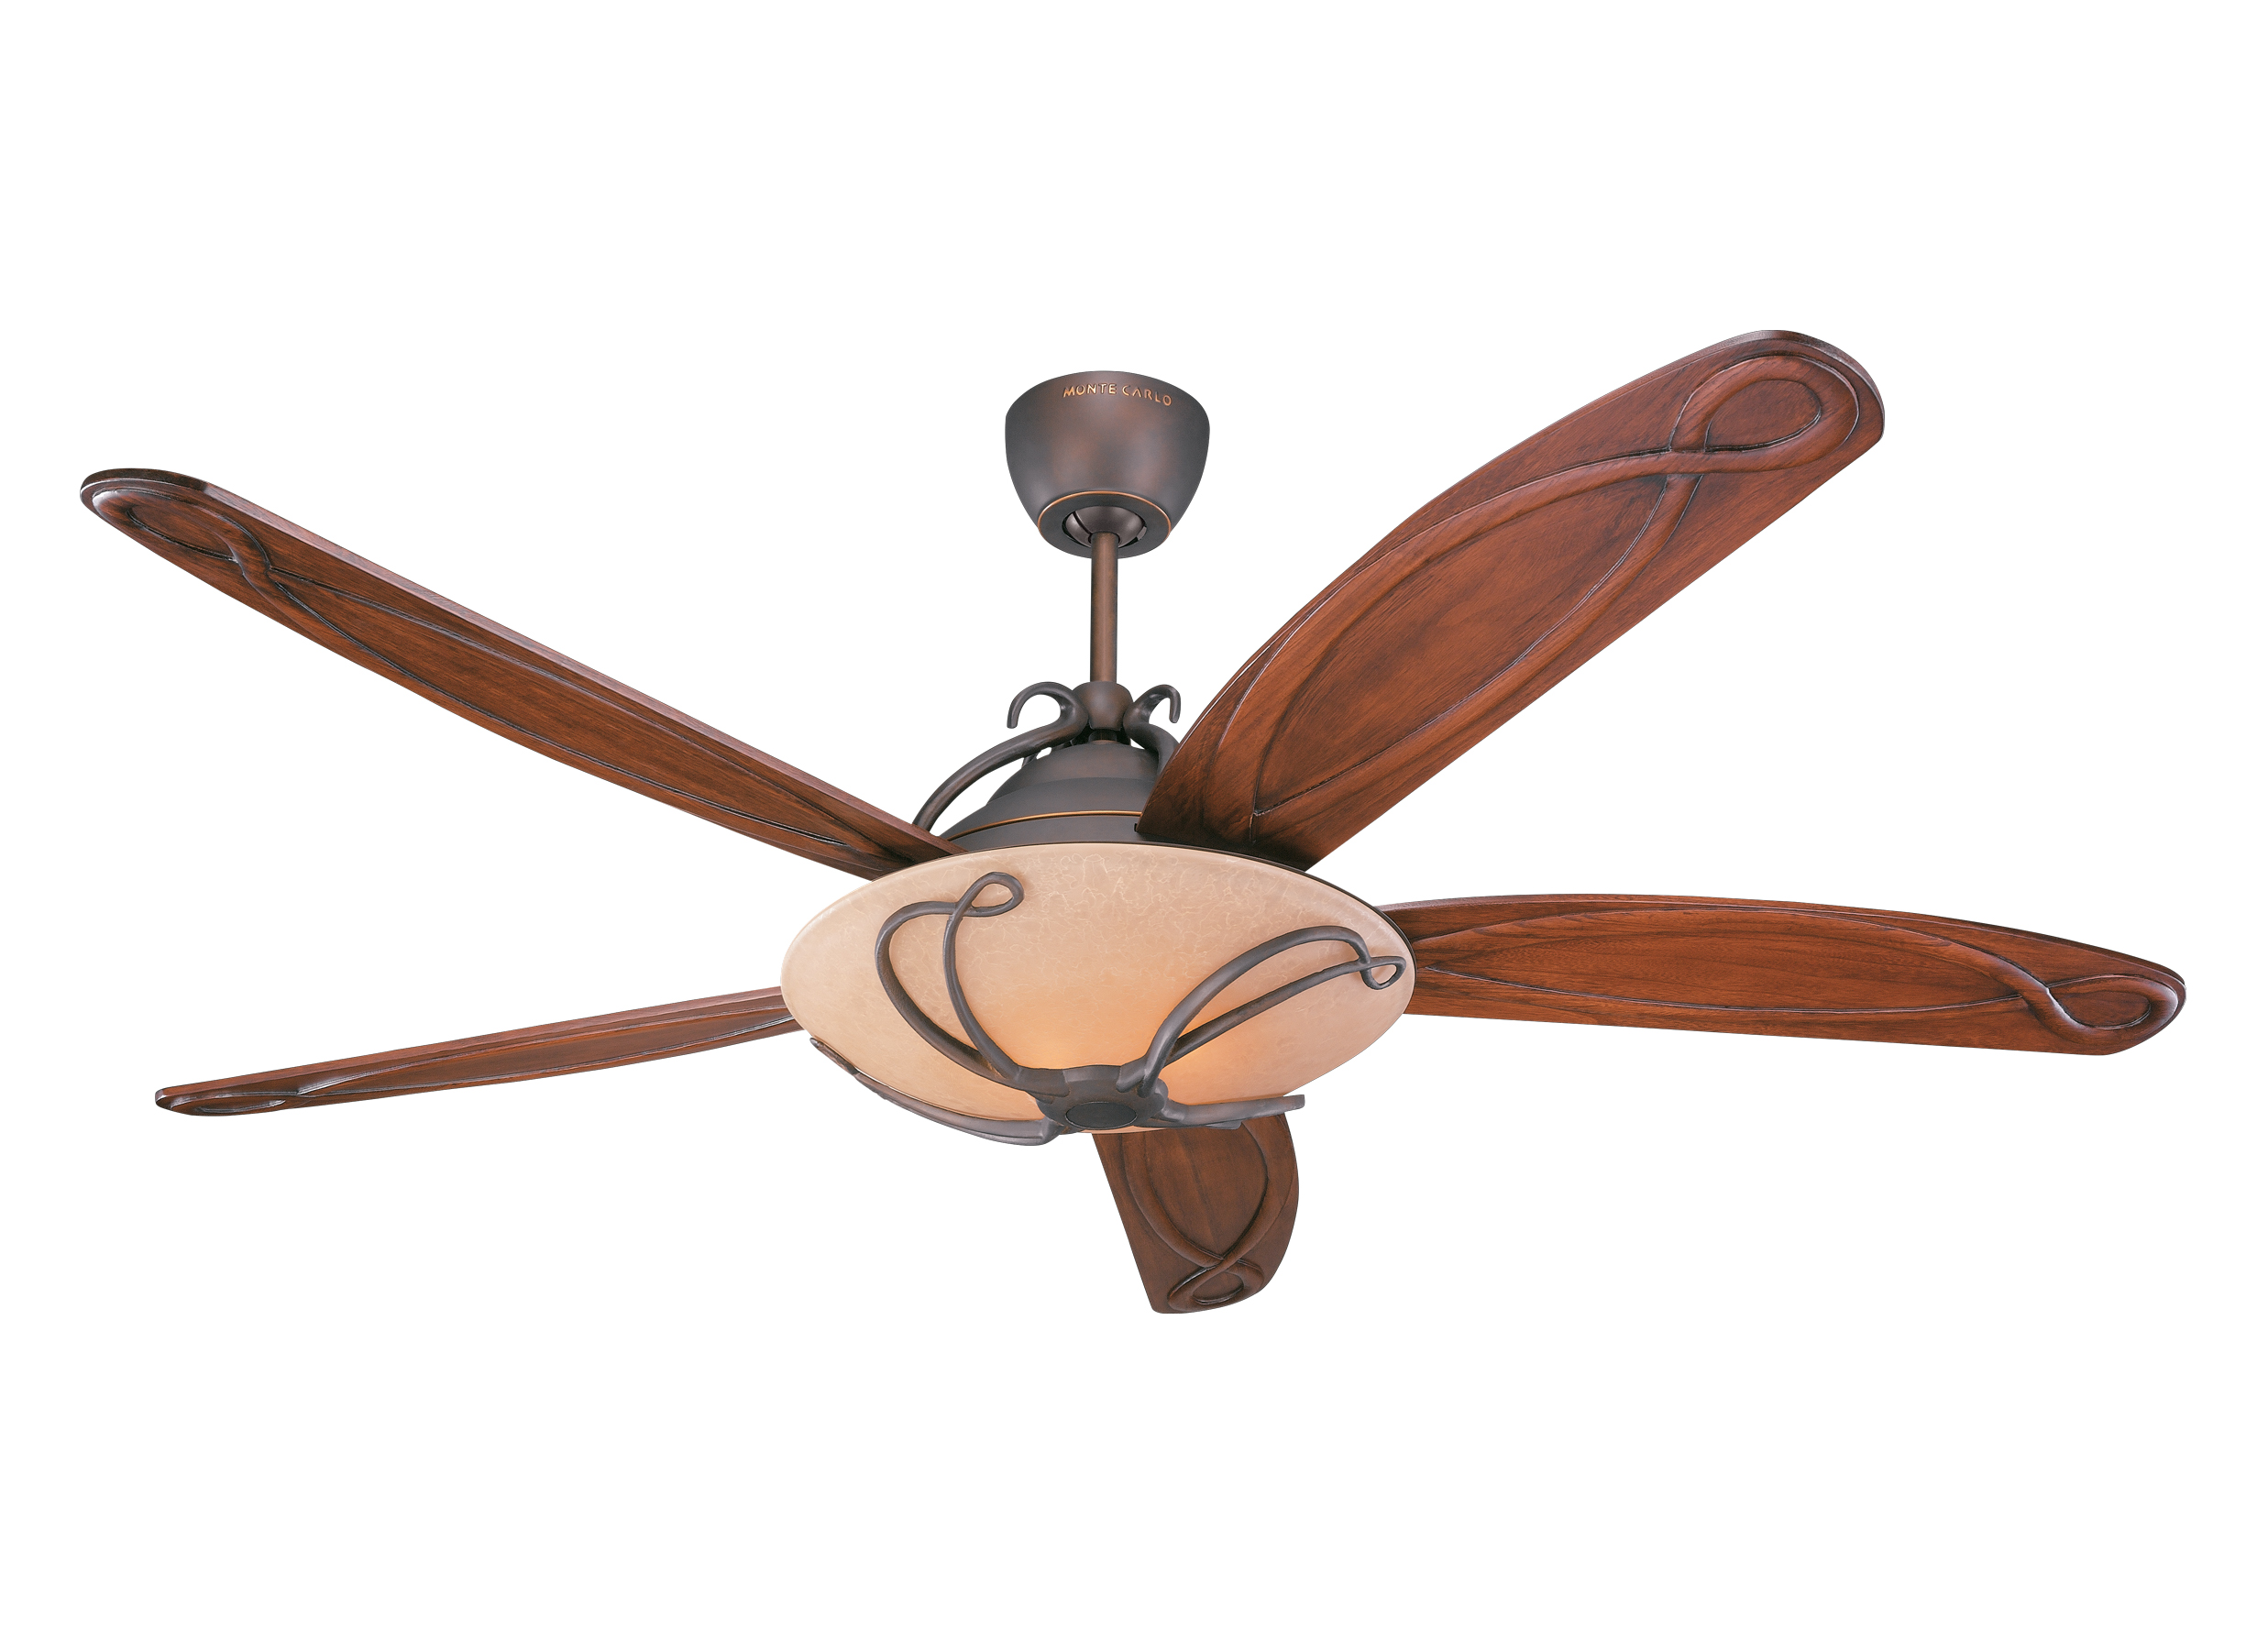 co white bright veloclub industries brass fans ceiling litex home patrofi hugger no depot light fan without kit celeste